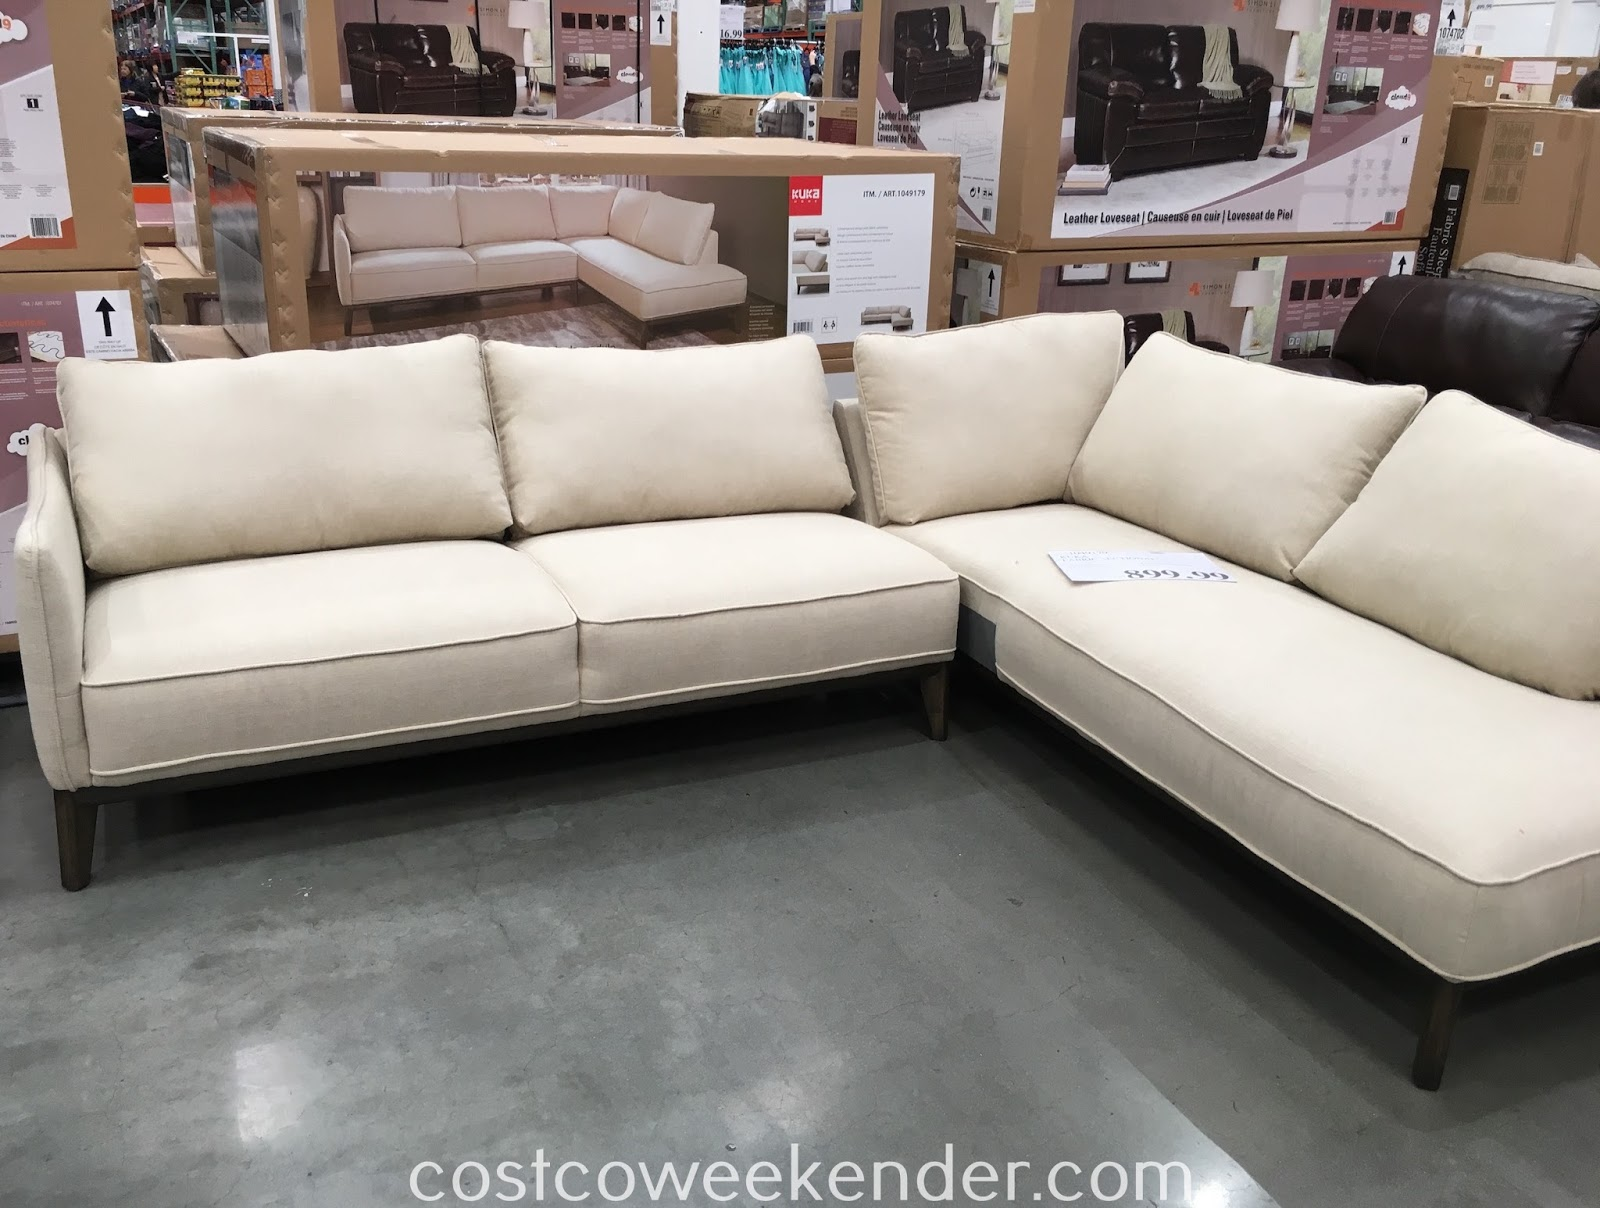 Kuka Fabric Sectional - Contemporary design